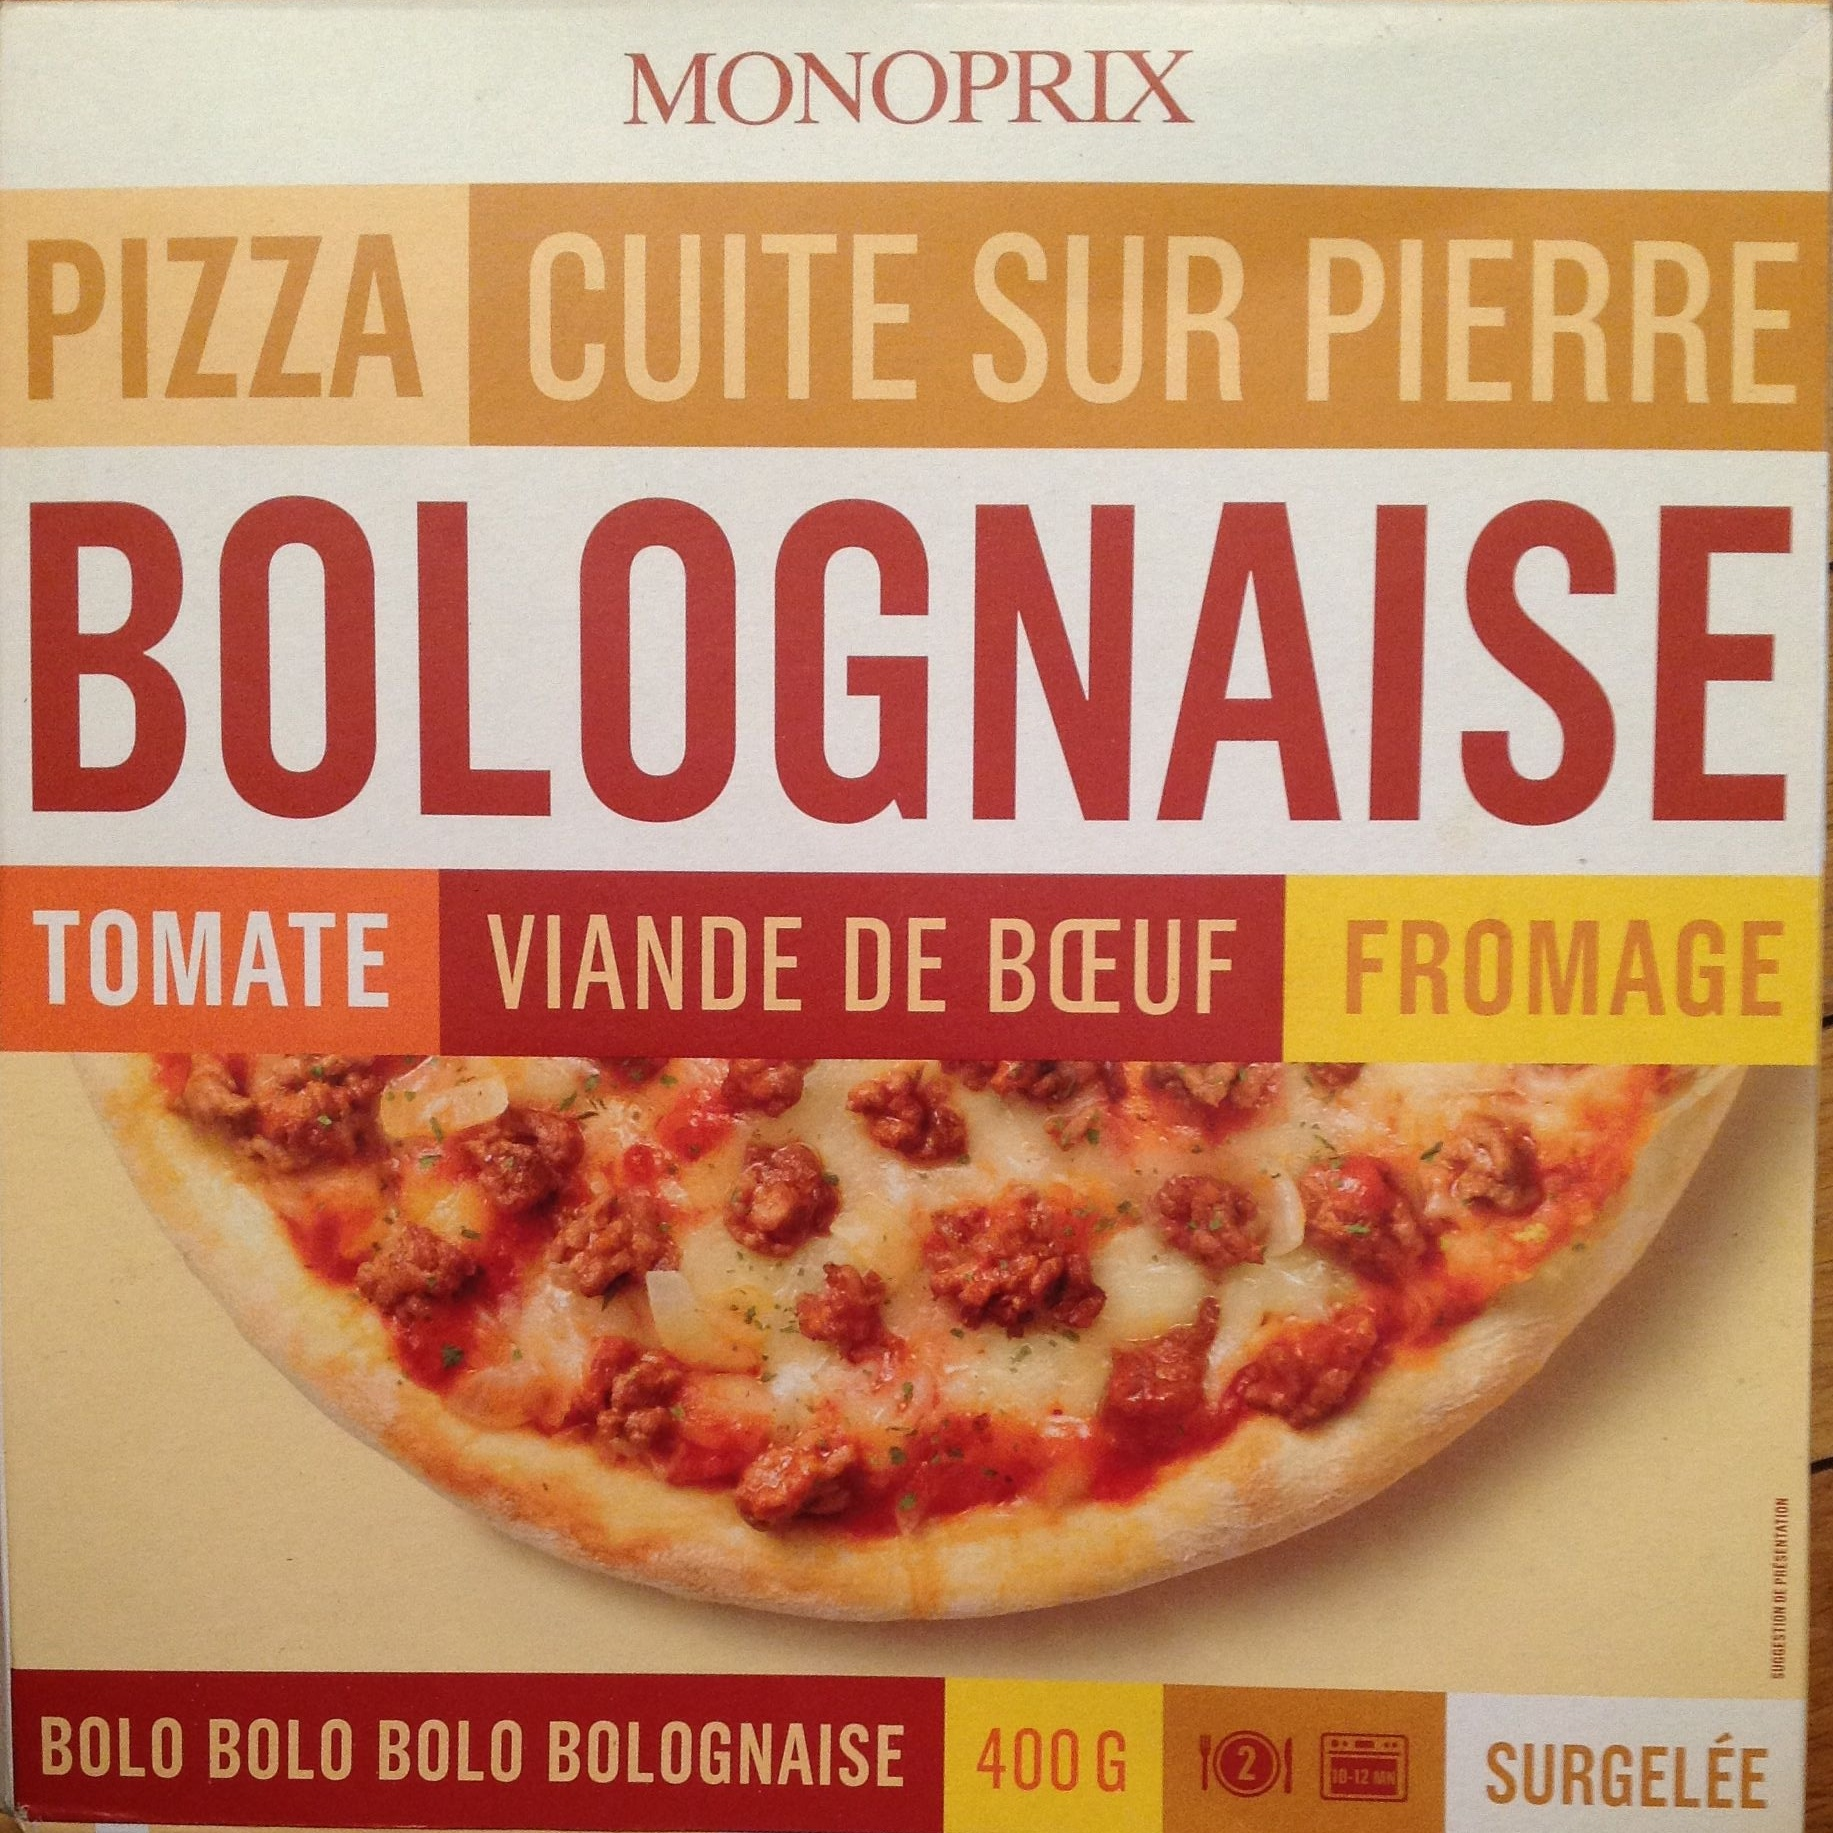 pizza cuite sur pierre bolognaise tomate viande de b uf fromage monoprix 400 g. Black Bedroom Furniture Sets. Home Design Ideas